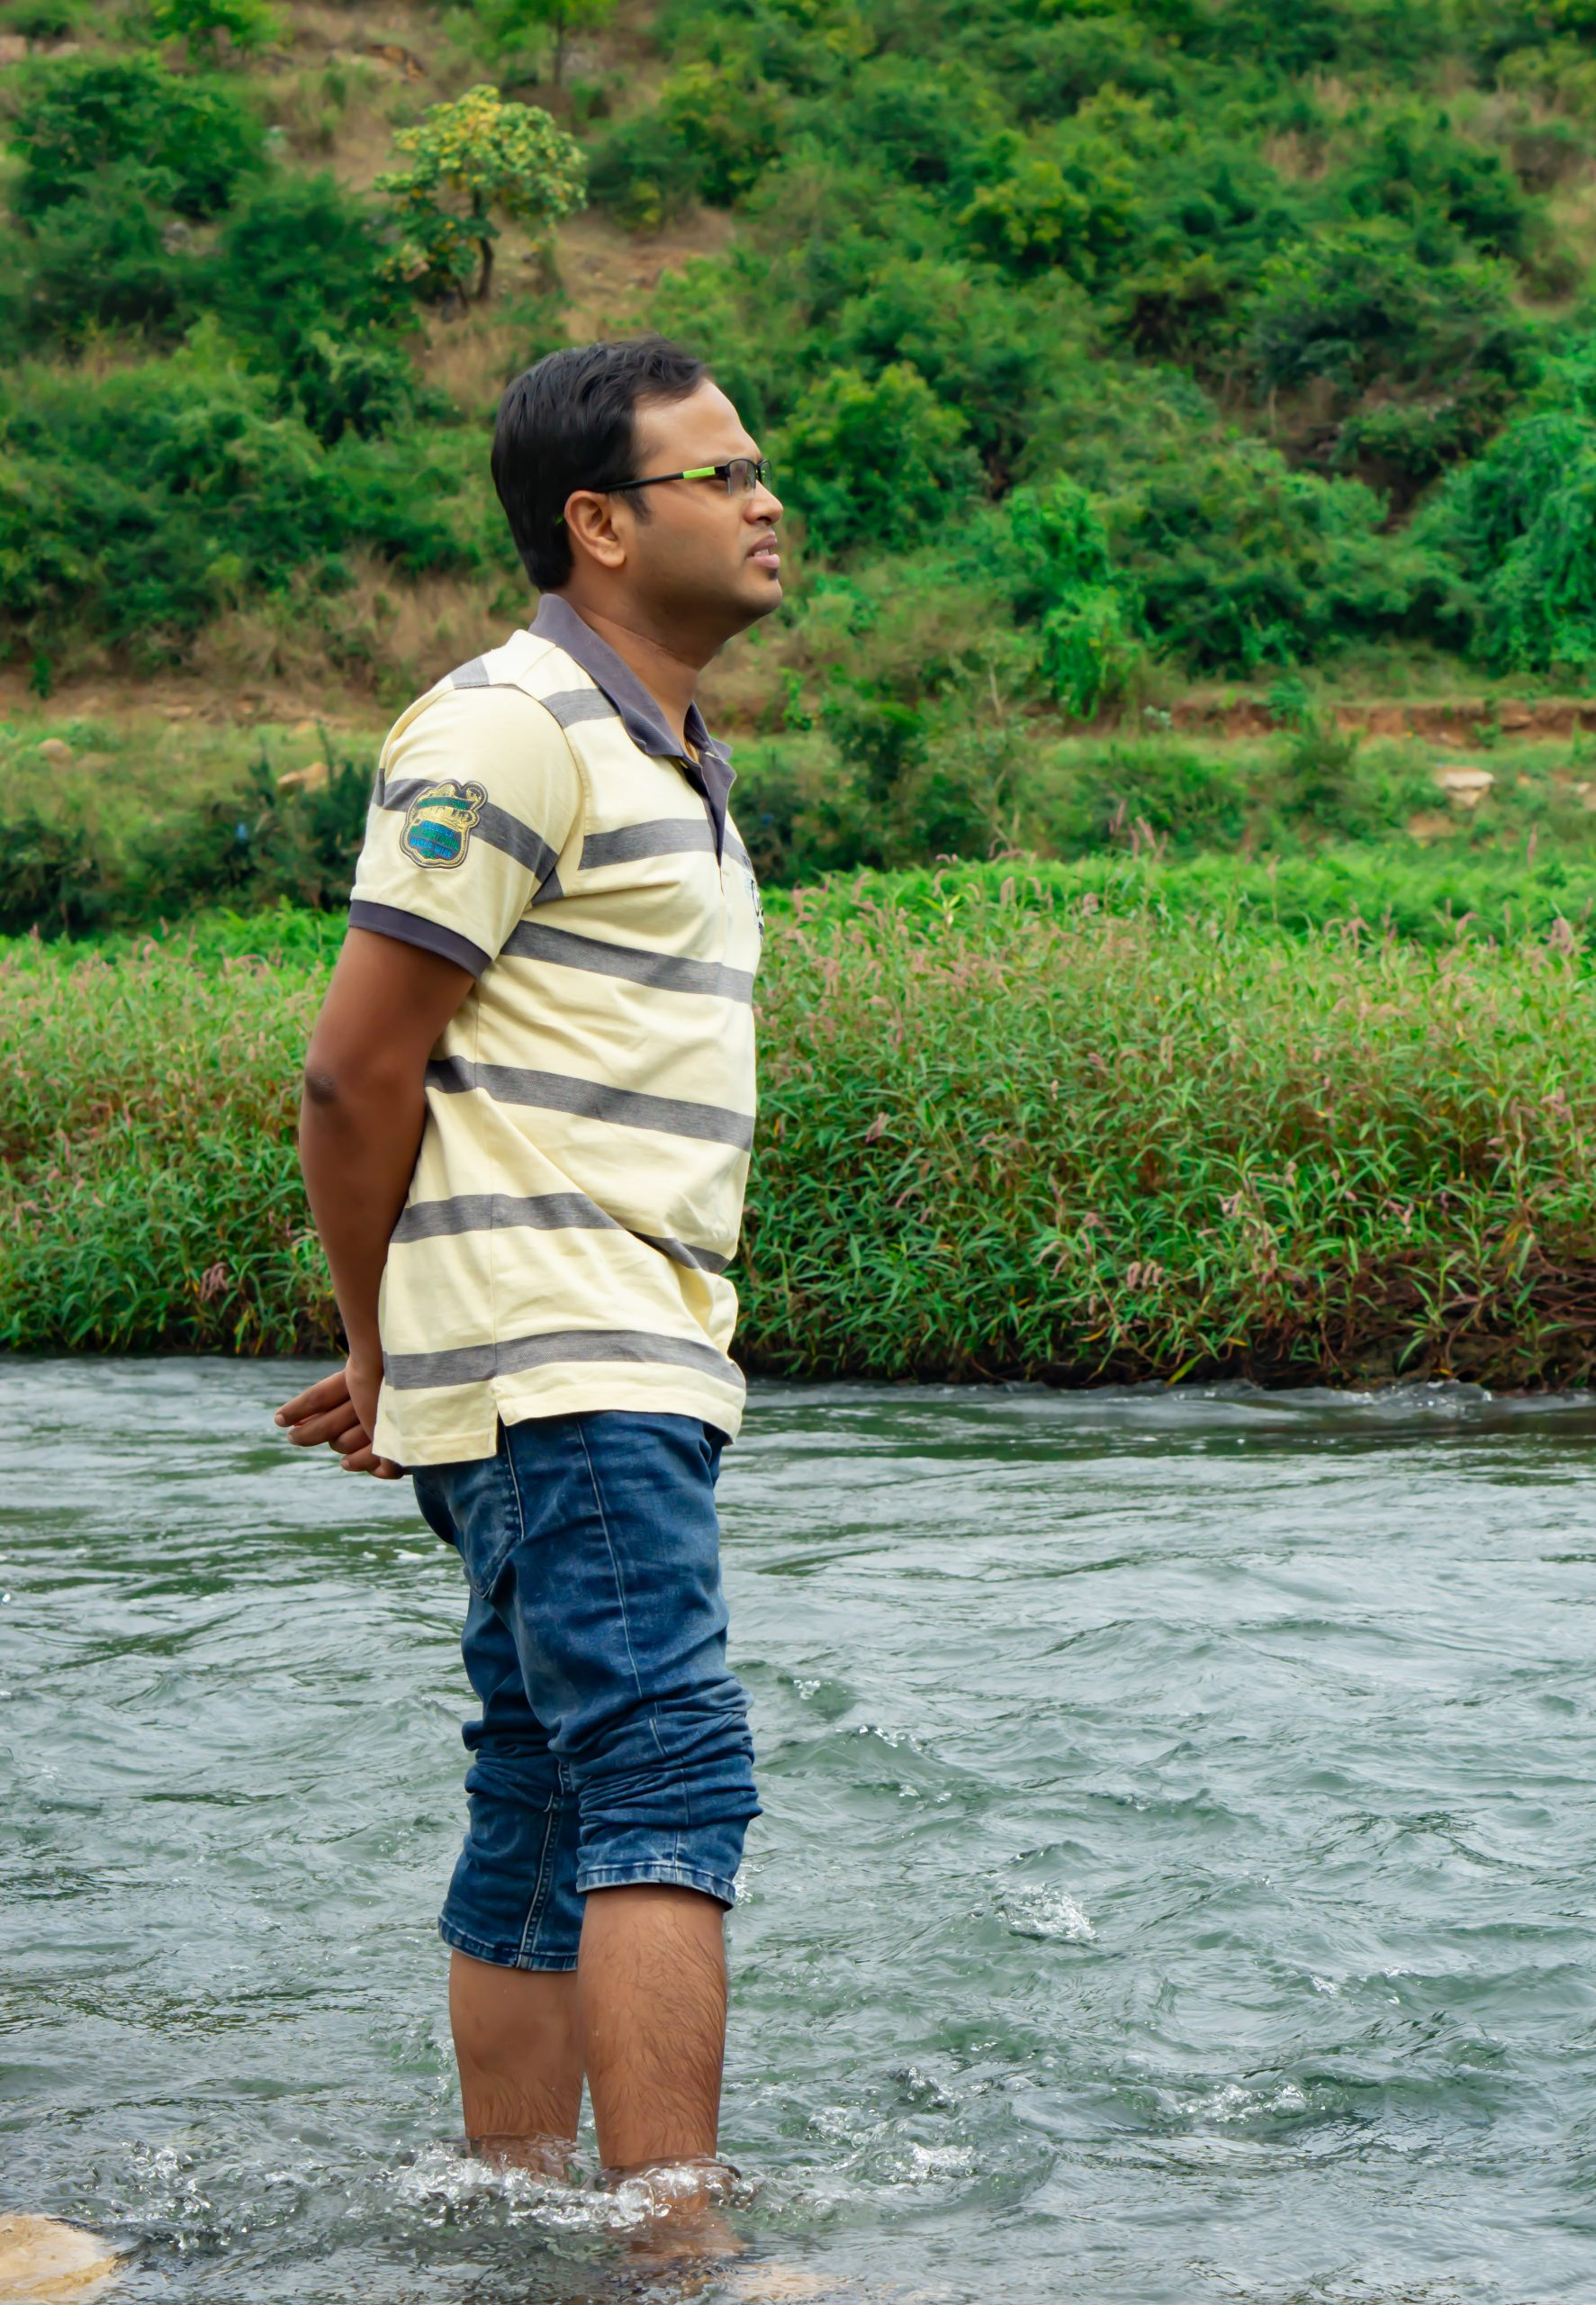 Man in the River